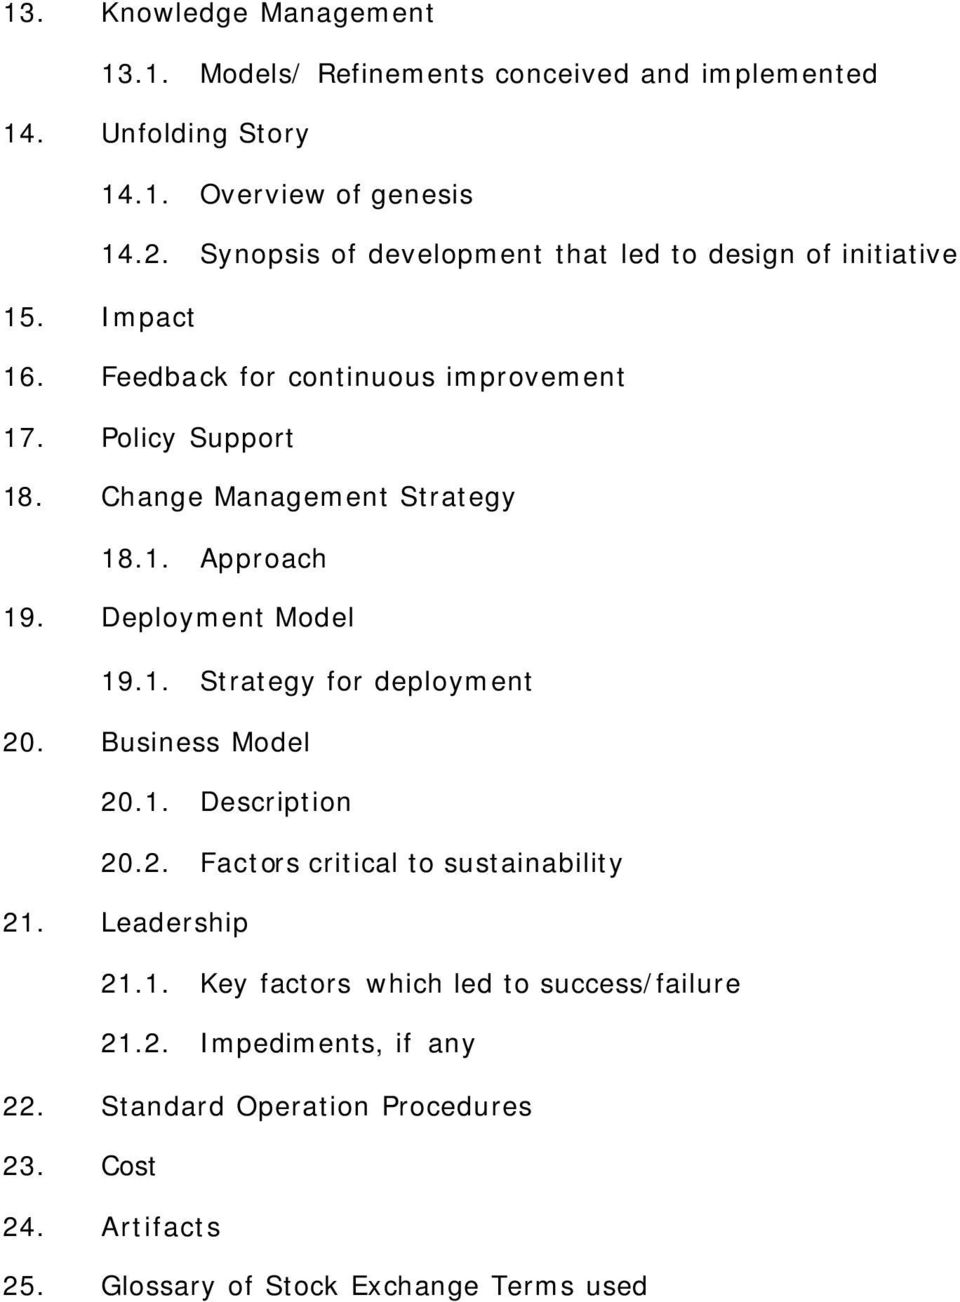 Change Management Strategy 18.1. Approach 19. Deployment Model 19.1. Strategy for deployment 20. Business Model 20.1. Description 20.2. Factors critical to sustainability 21.